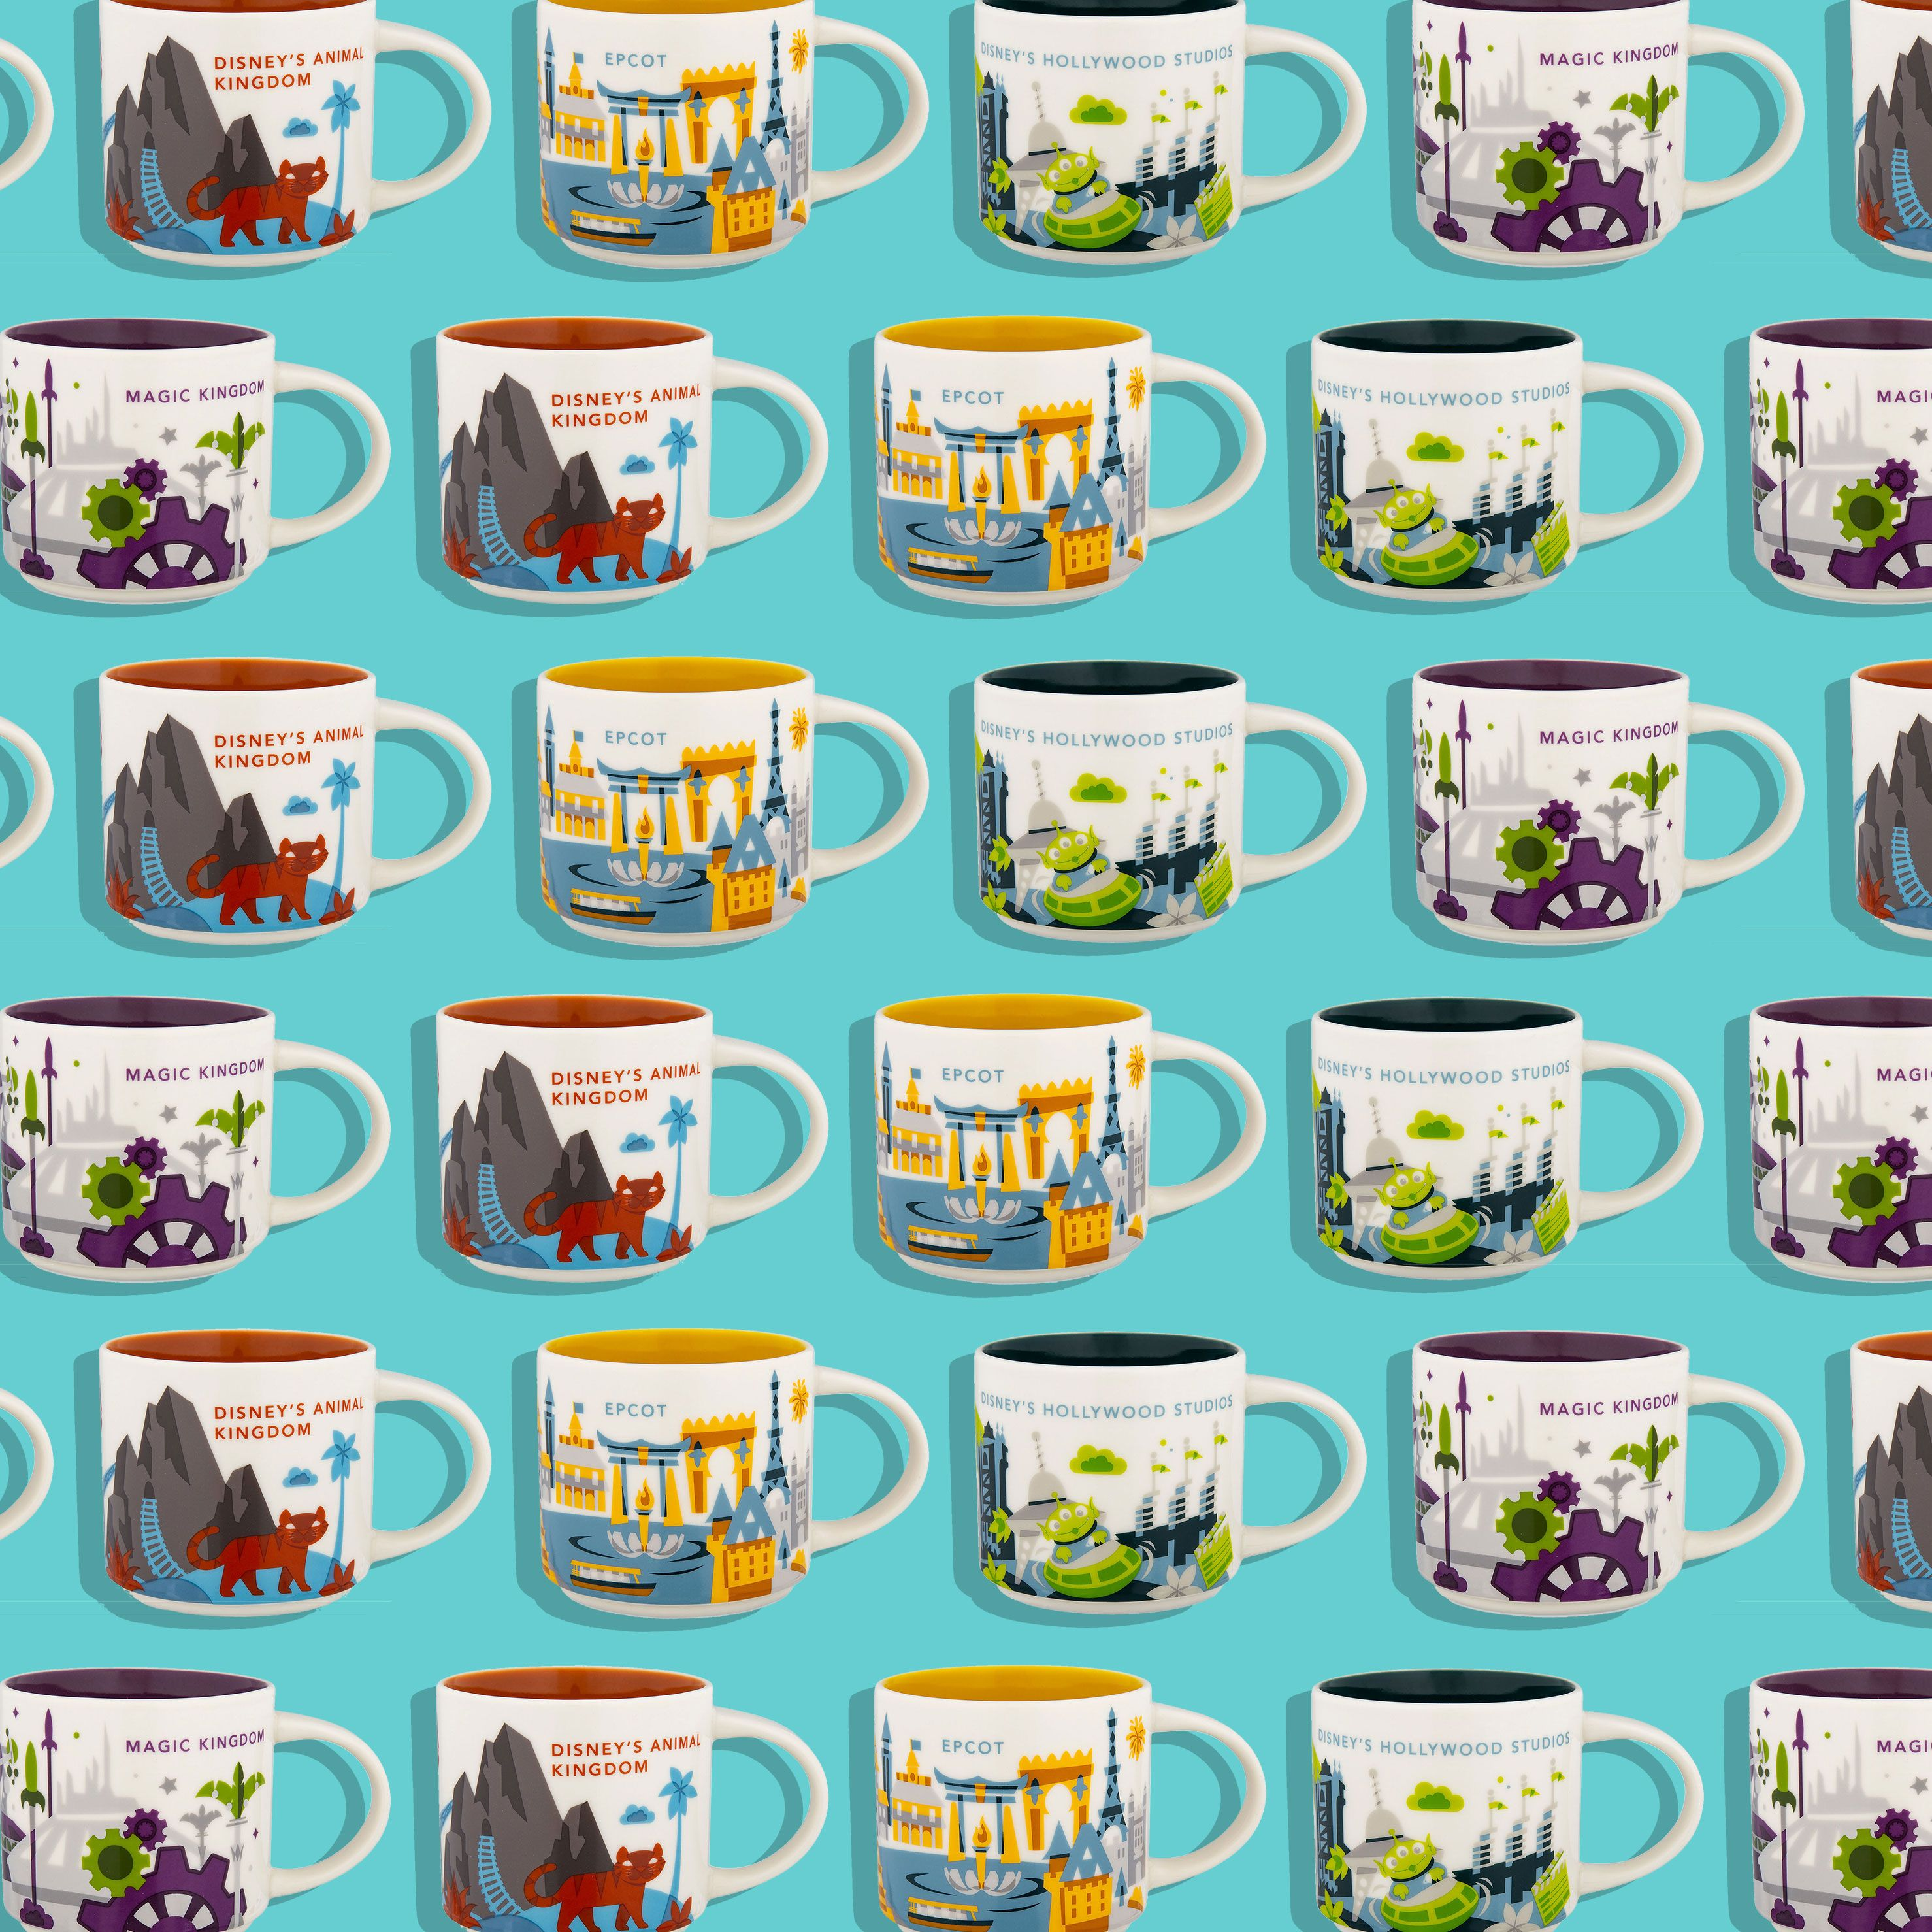 Starbucks You Are Here Disney Parks Mugs Are Available Online